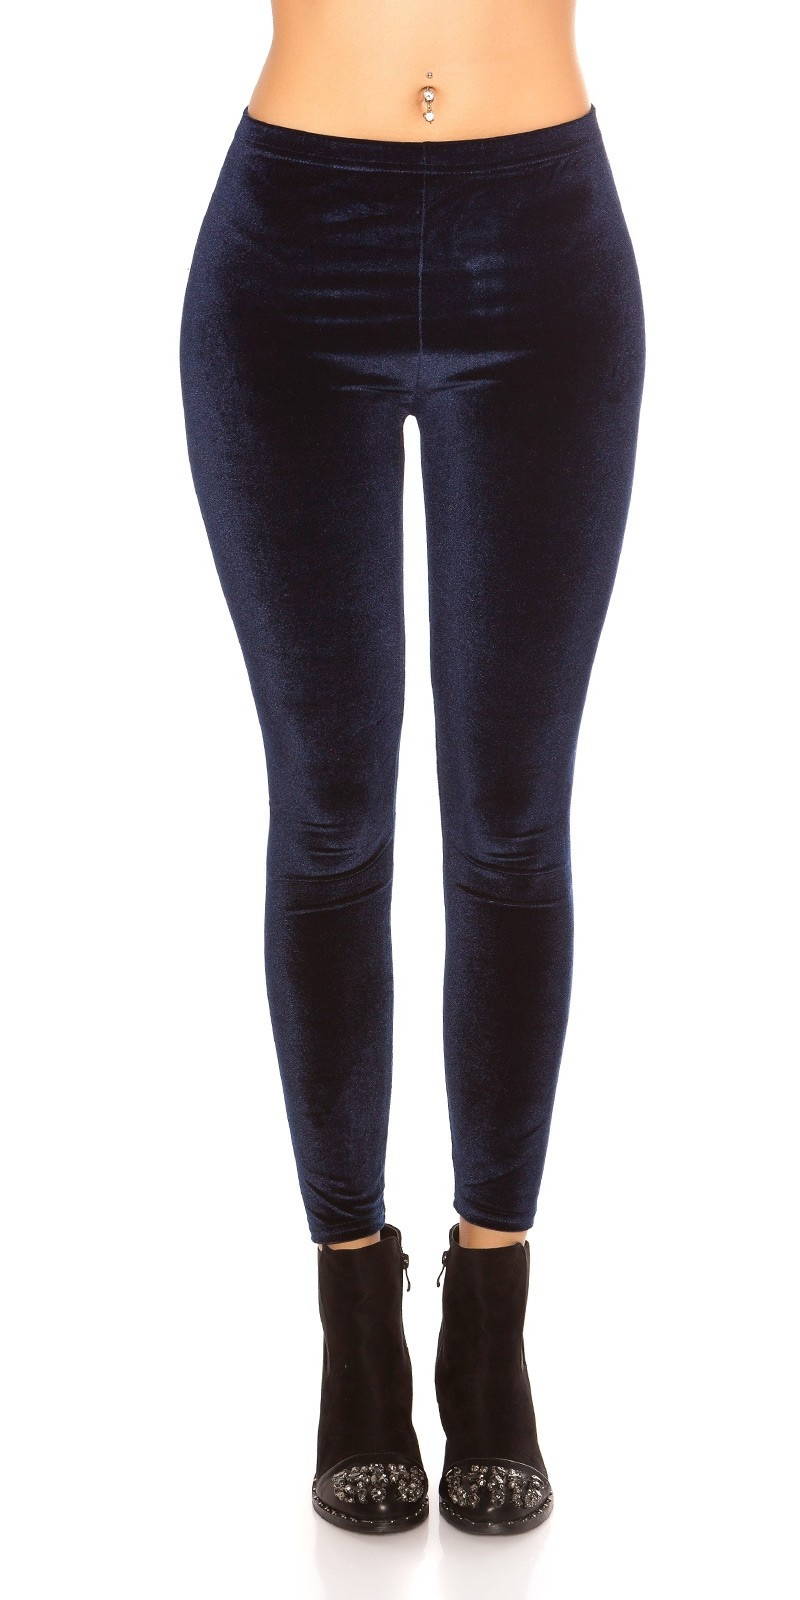 Trendy nicki leggins Blue